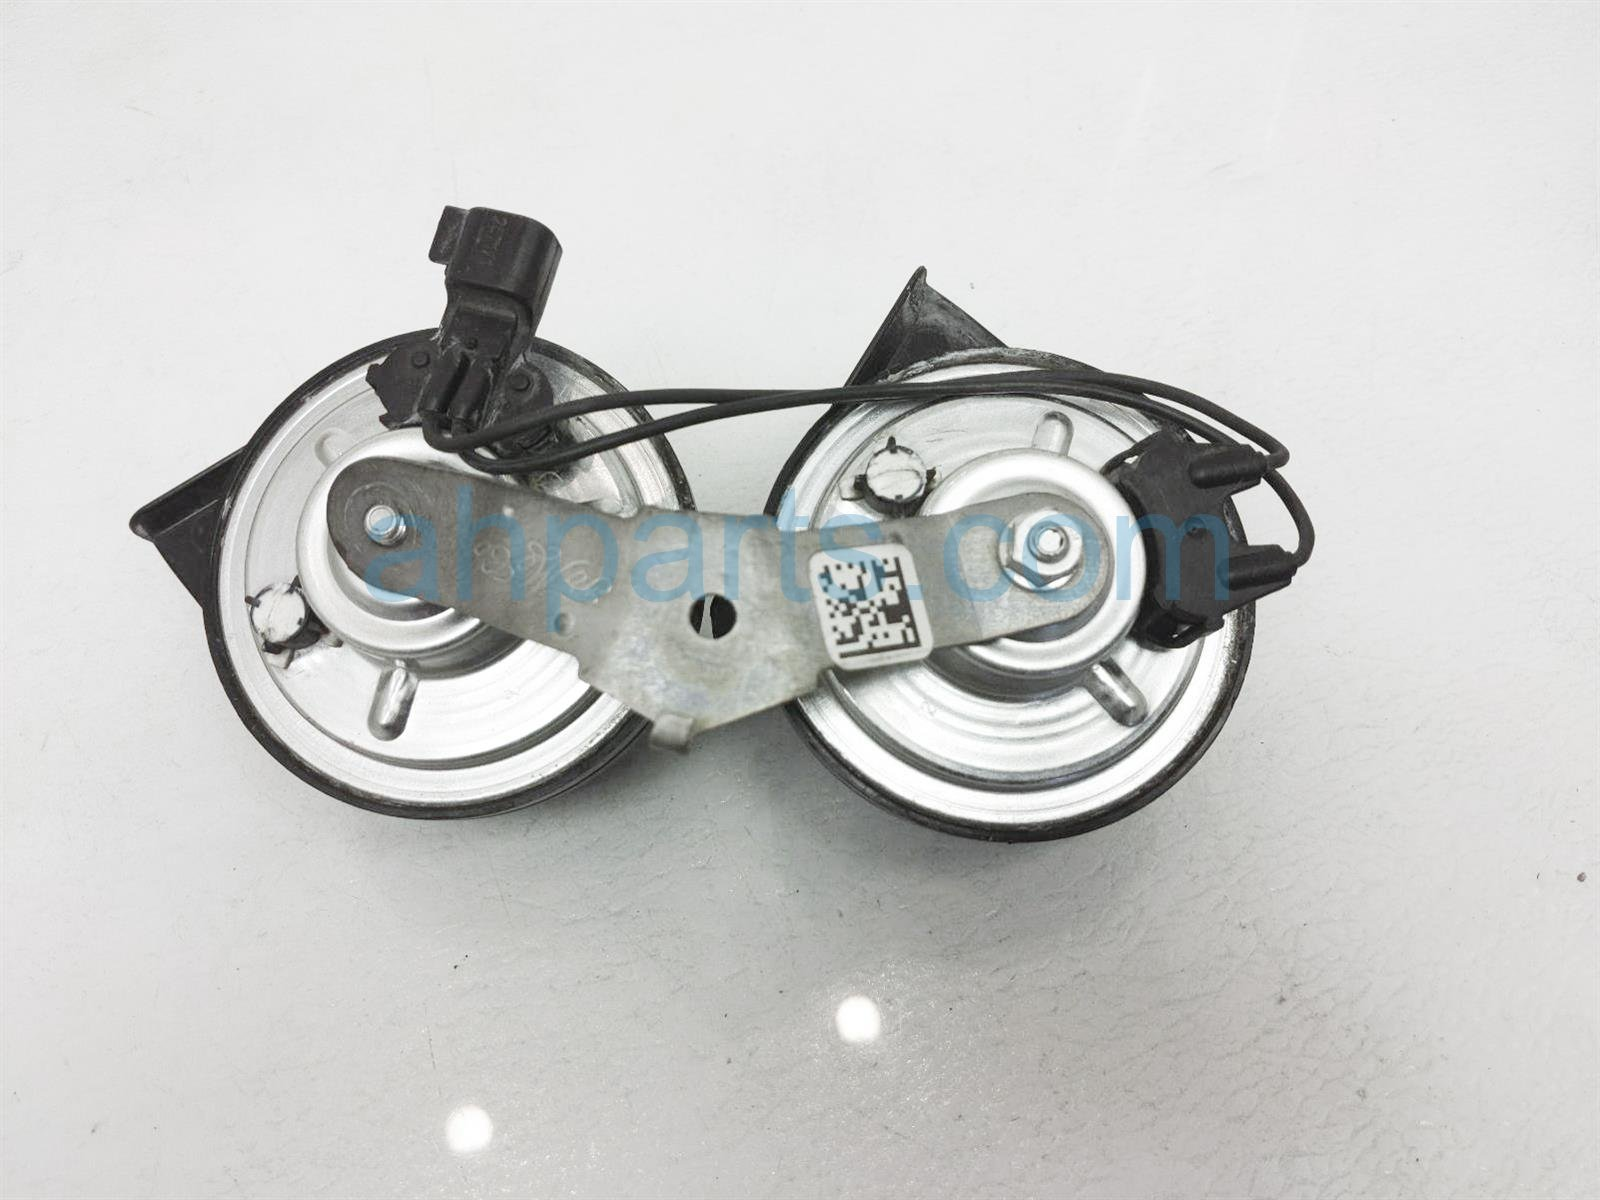 2017 Ford Mustang Horn Assy FR3Z 13832 G Replacement